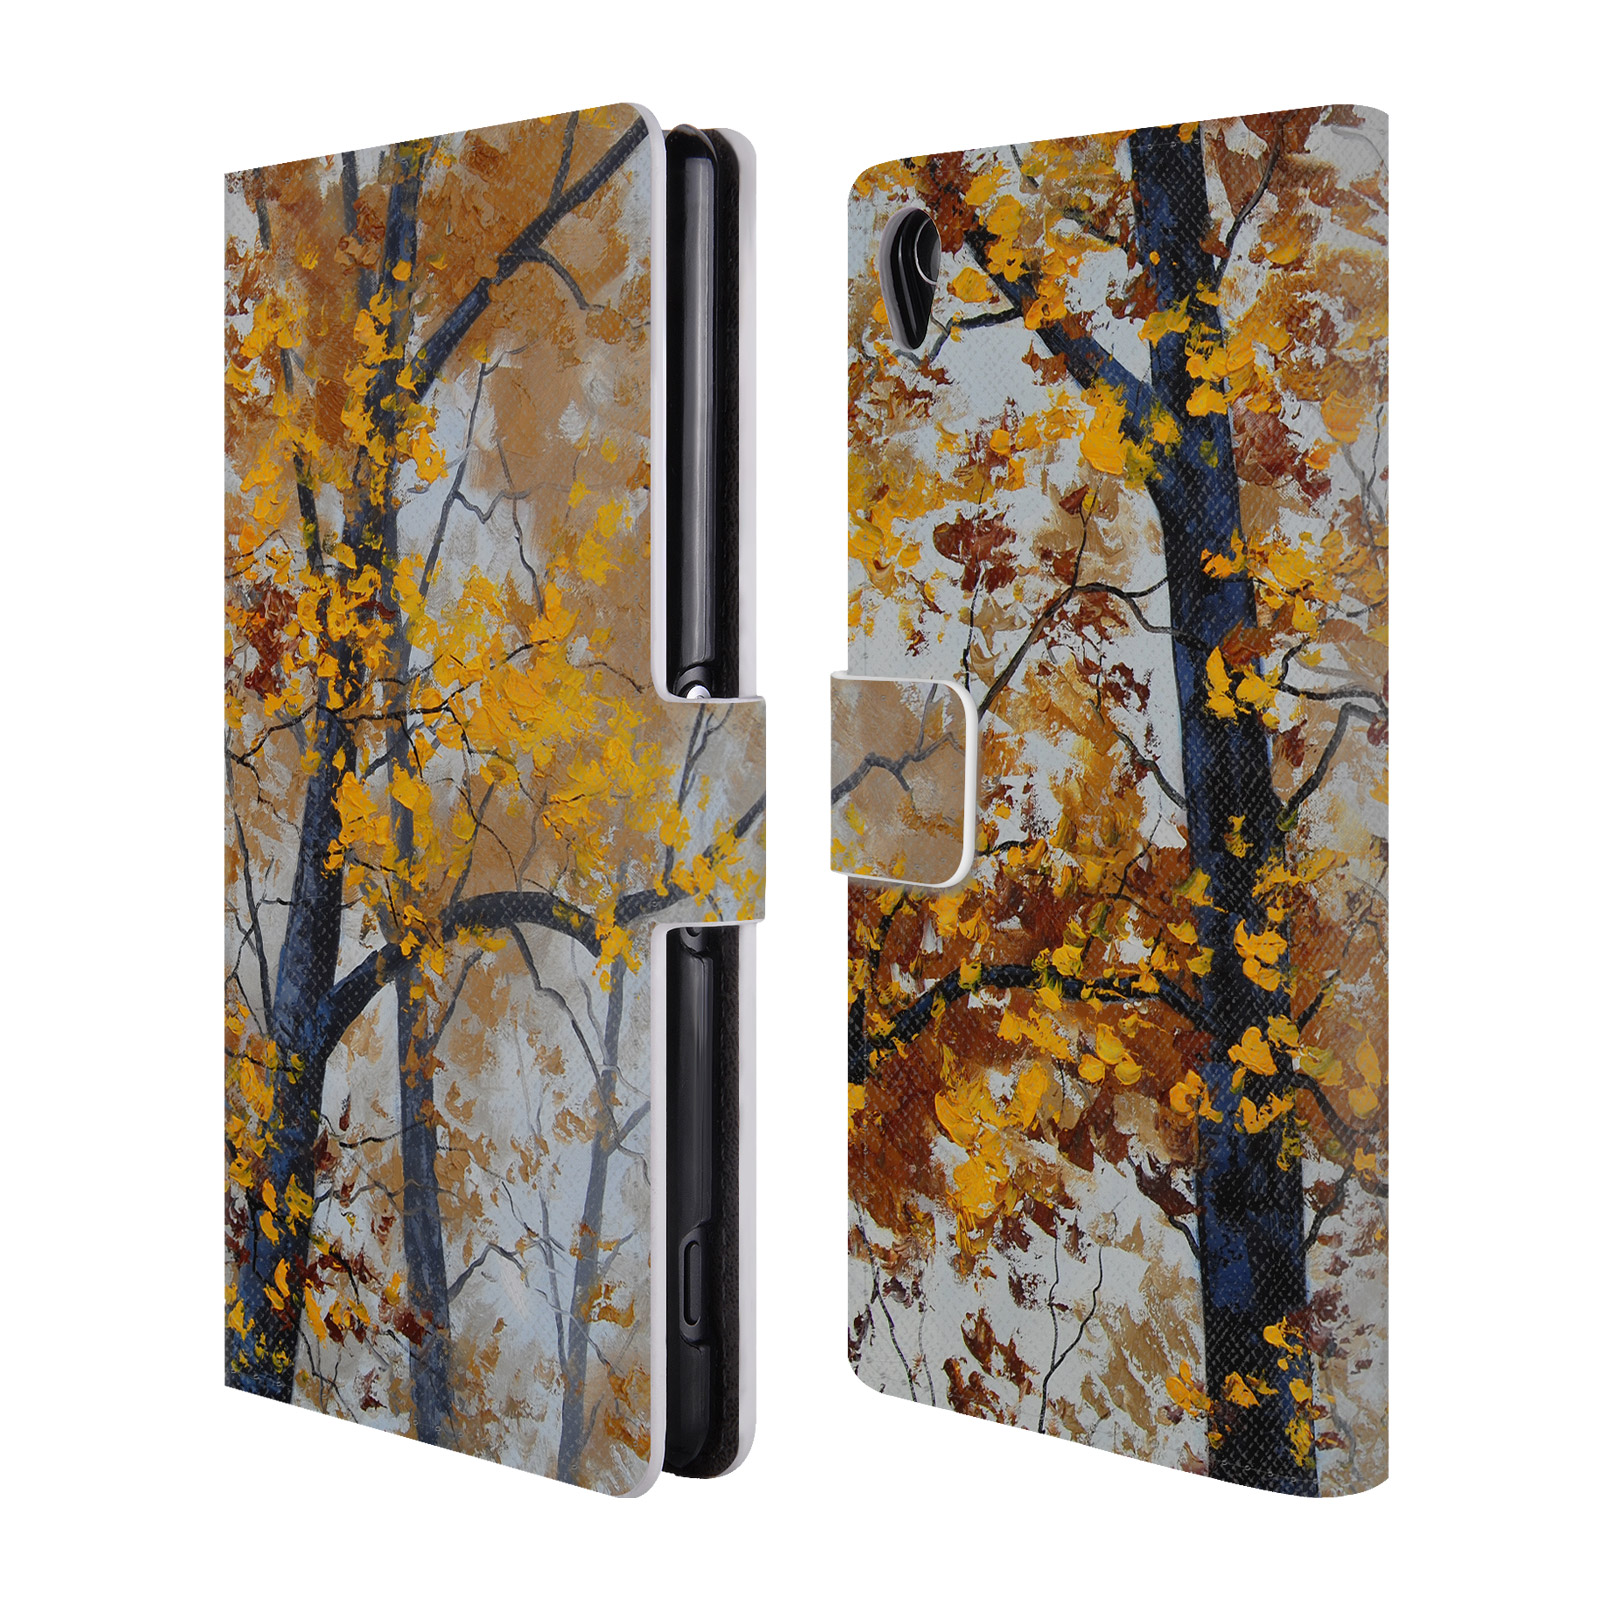 OFFICIAL-GRAHAM-GERCKEN-AUTUMN-LEATHER-BOOK-WALLET-CASE-COVER-FOR-SONY-PHONES-1